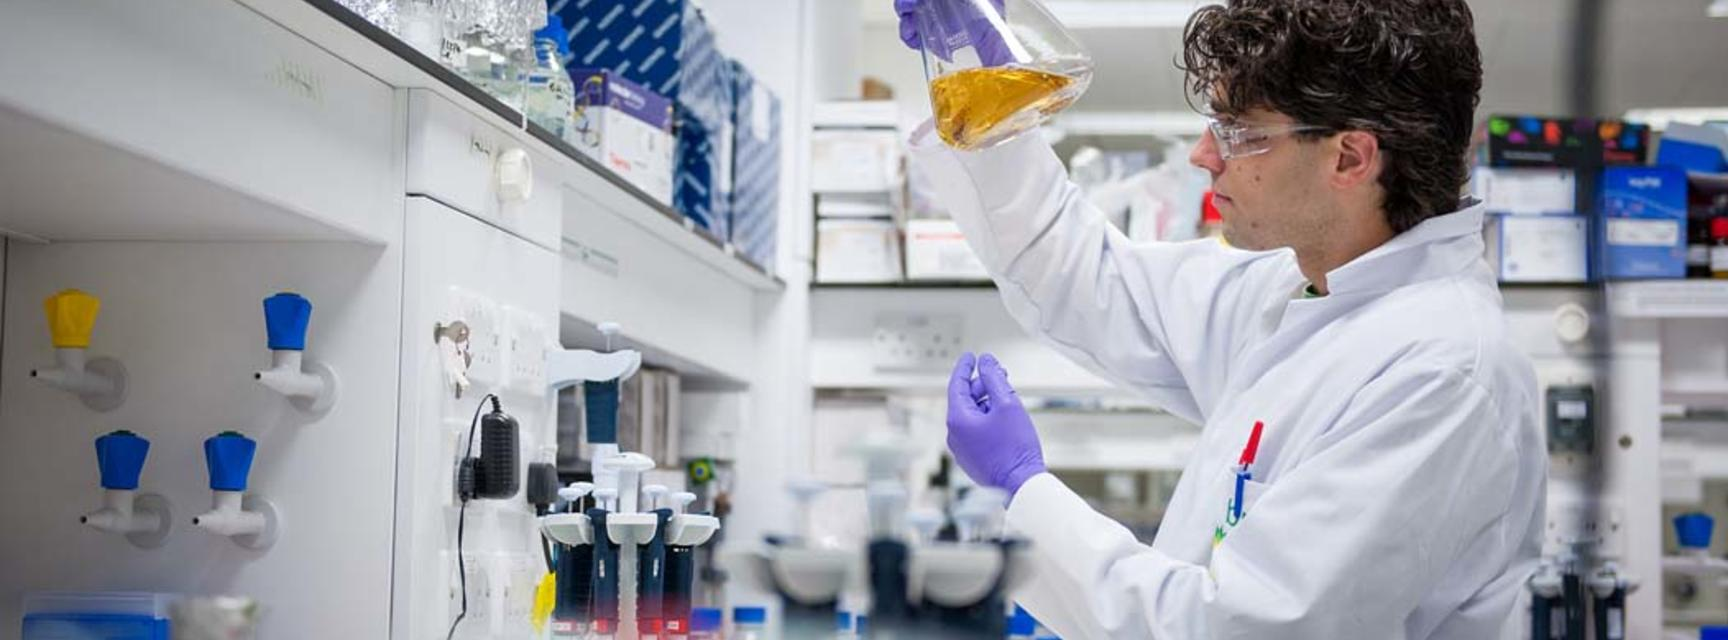 Photo of person in a laboratory carrying out research